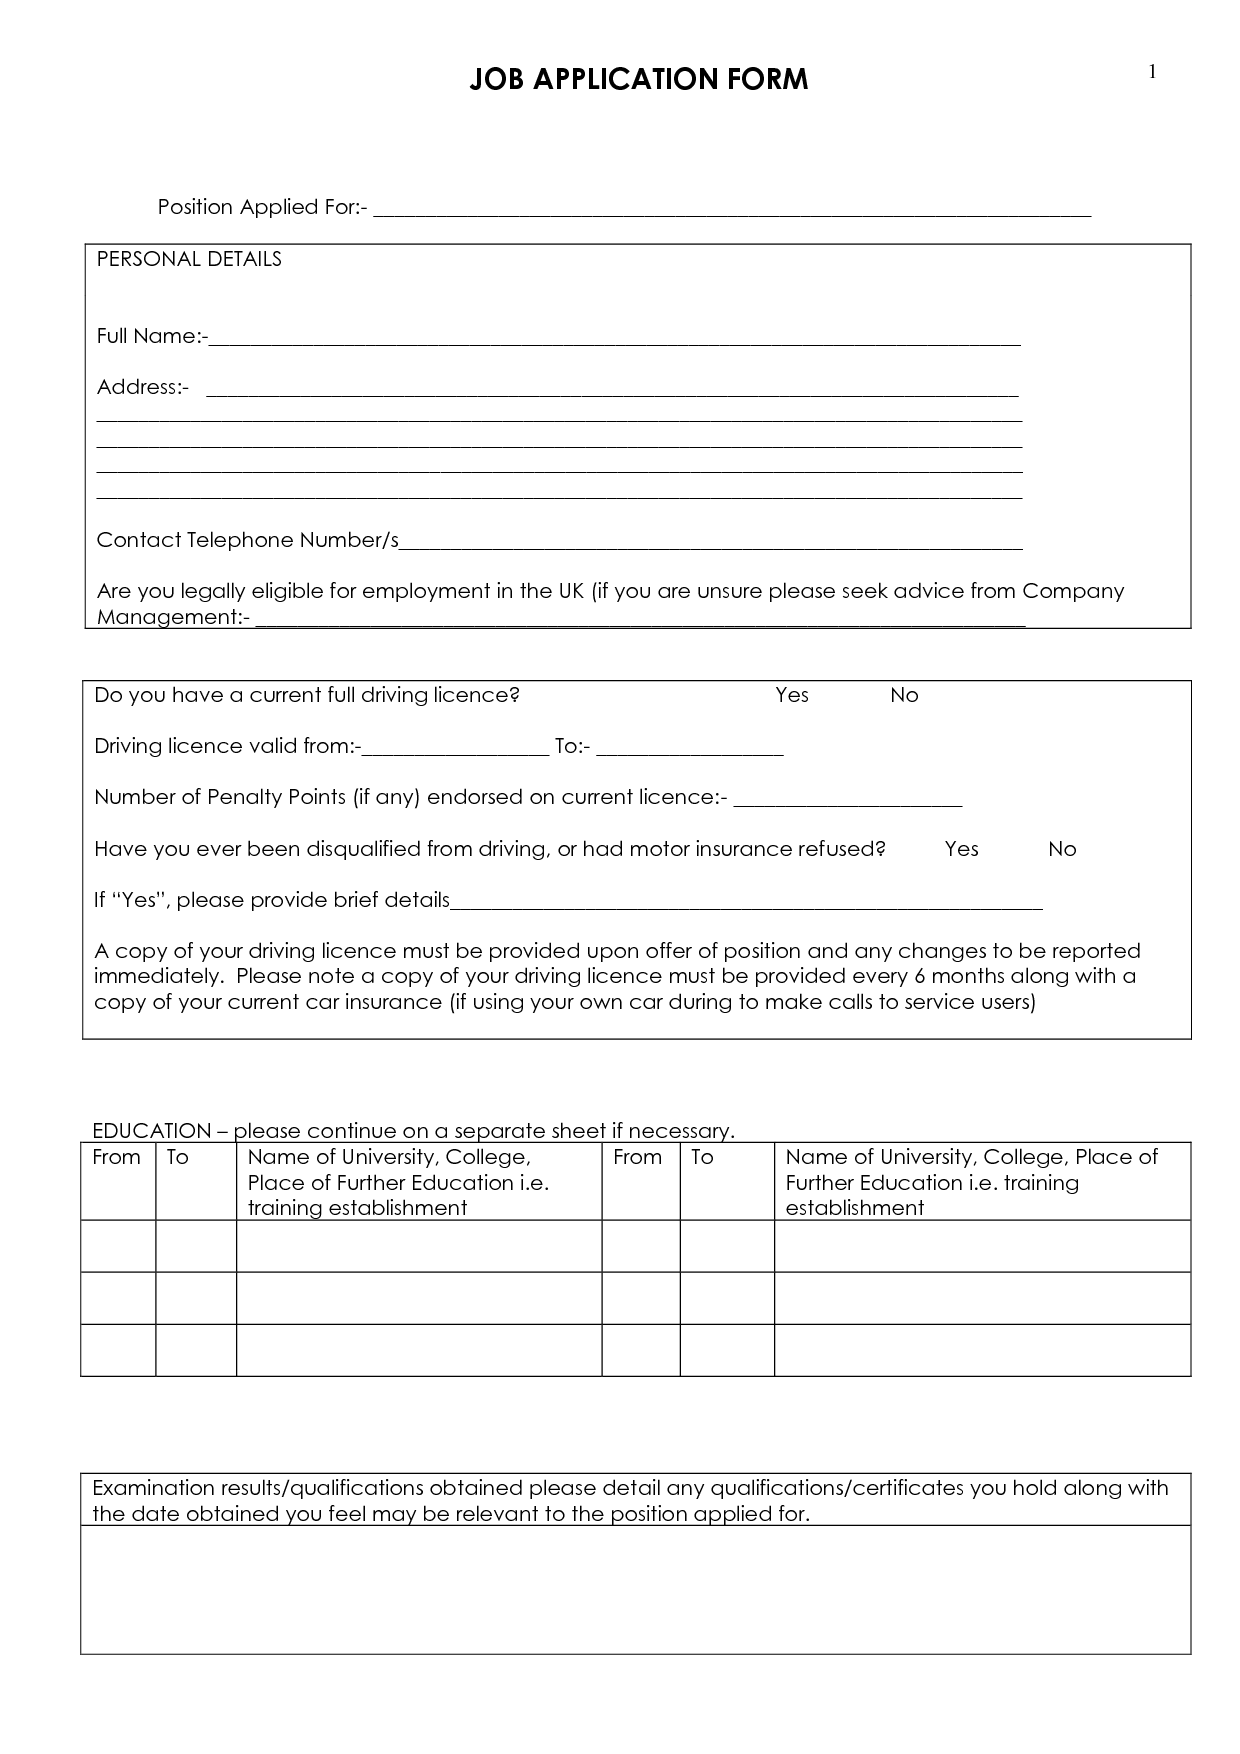 job application form to print | Blank Job Application Forms | Books ...